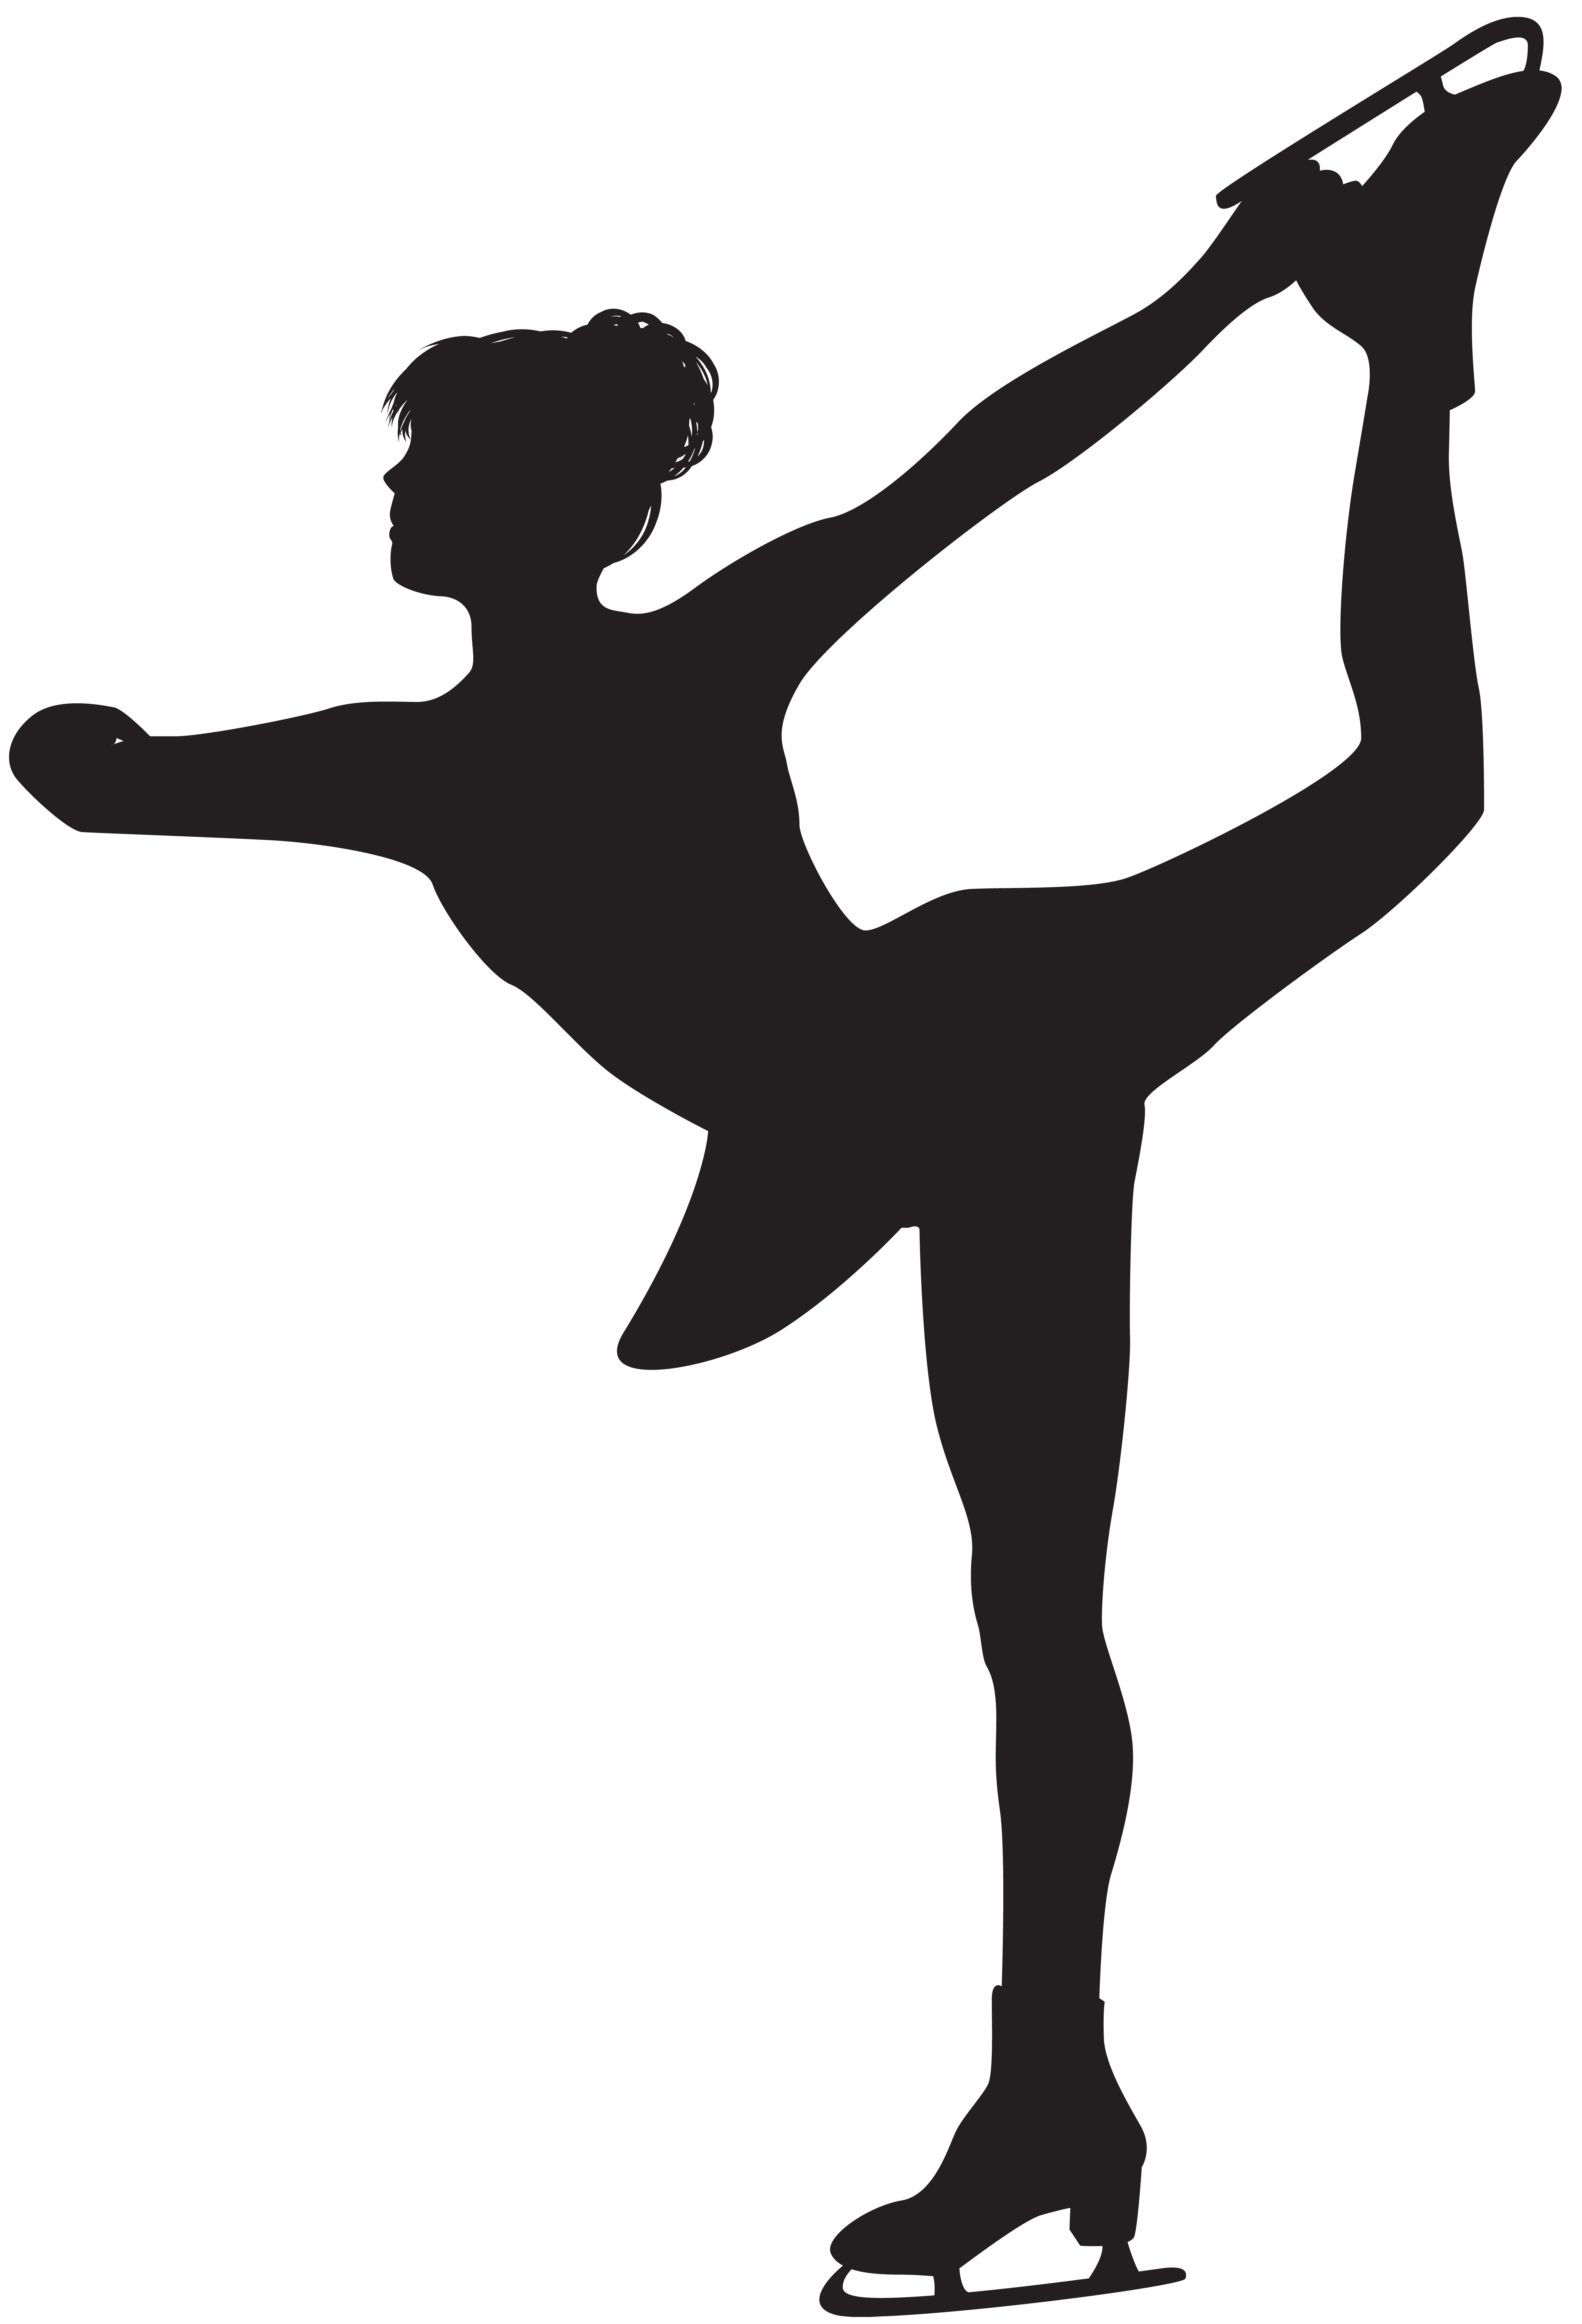 Free ice skater clipart black and white banner stock Ice skater silhouettes clipart images gallery for free download ... banner stock